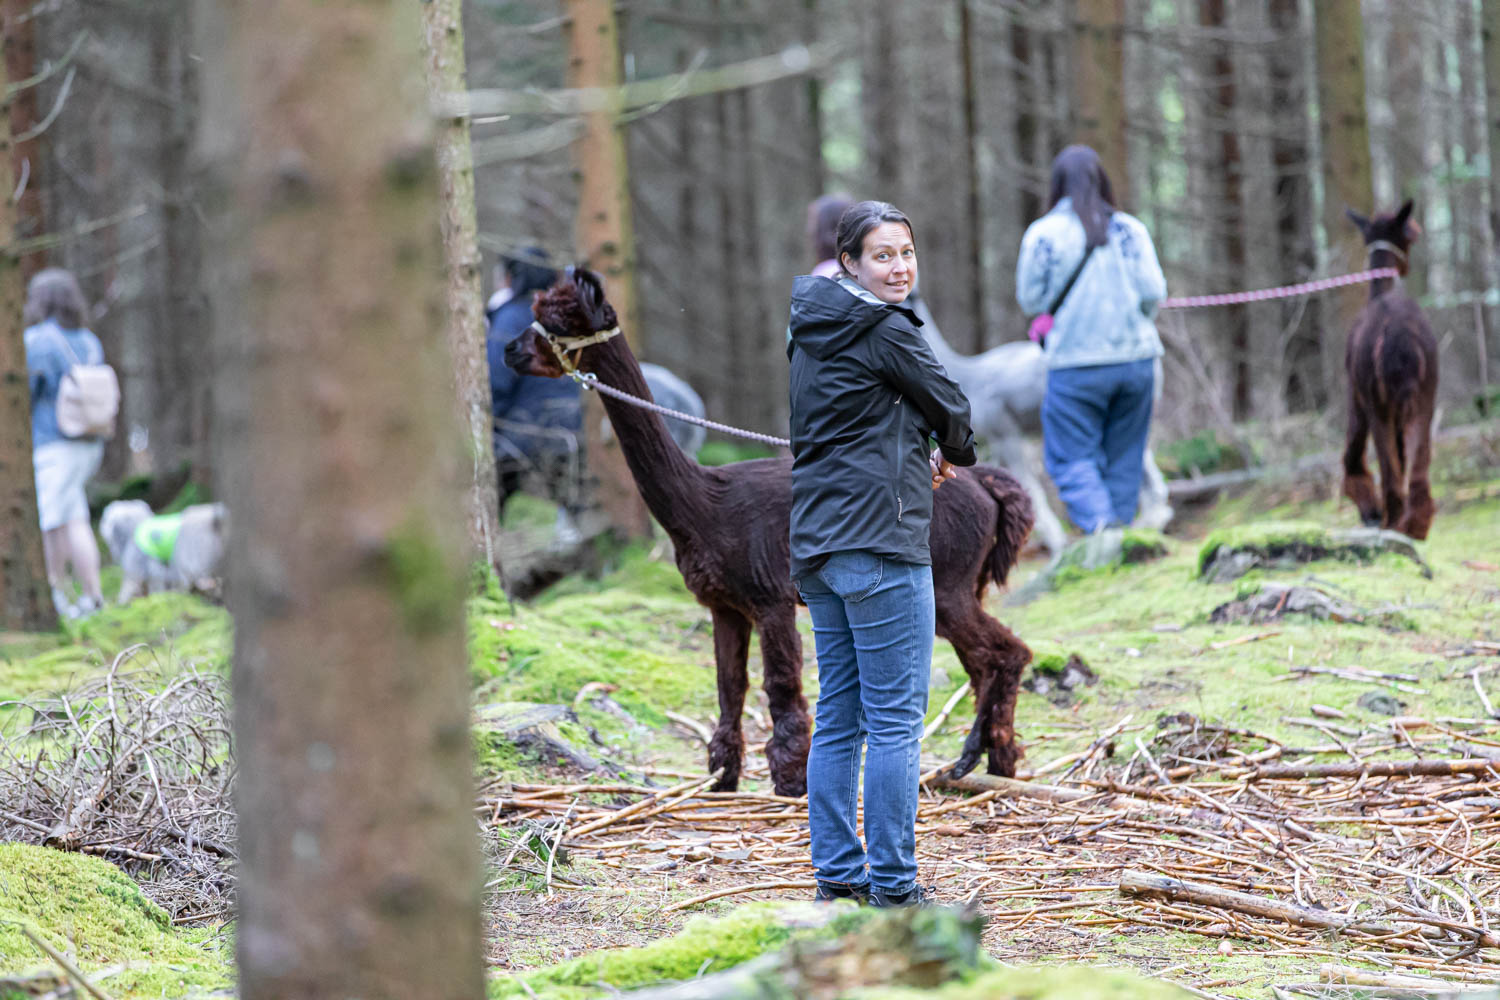 Our experience of the Alpaca Trekking